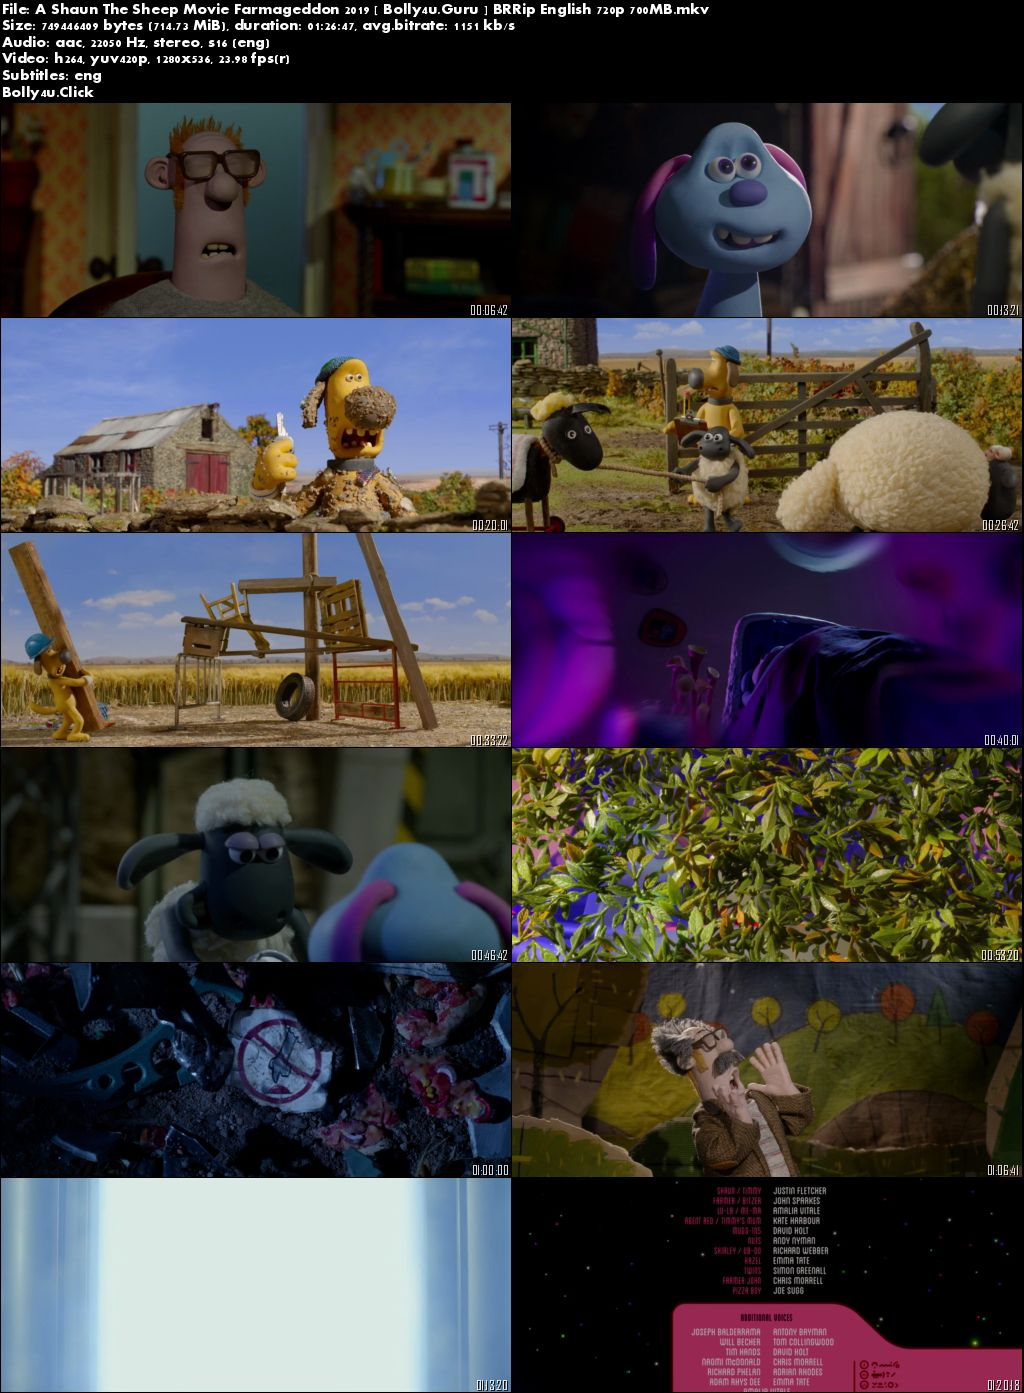 A Shaun The Sheep Movie Farmageddon 2019 BRRip 250Mb English 480p ESub download